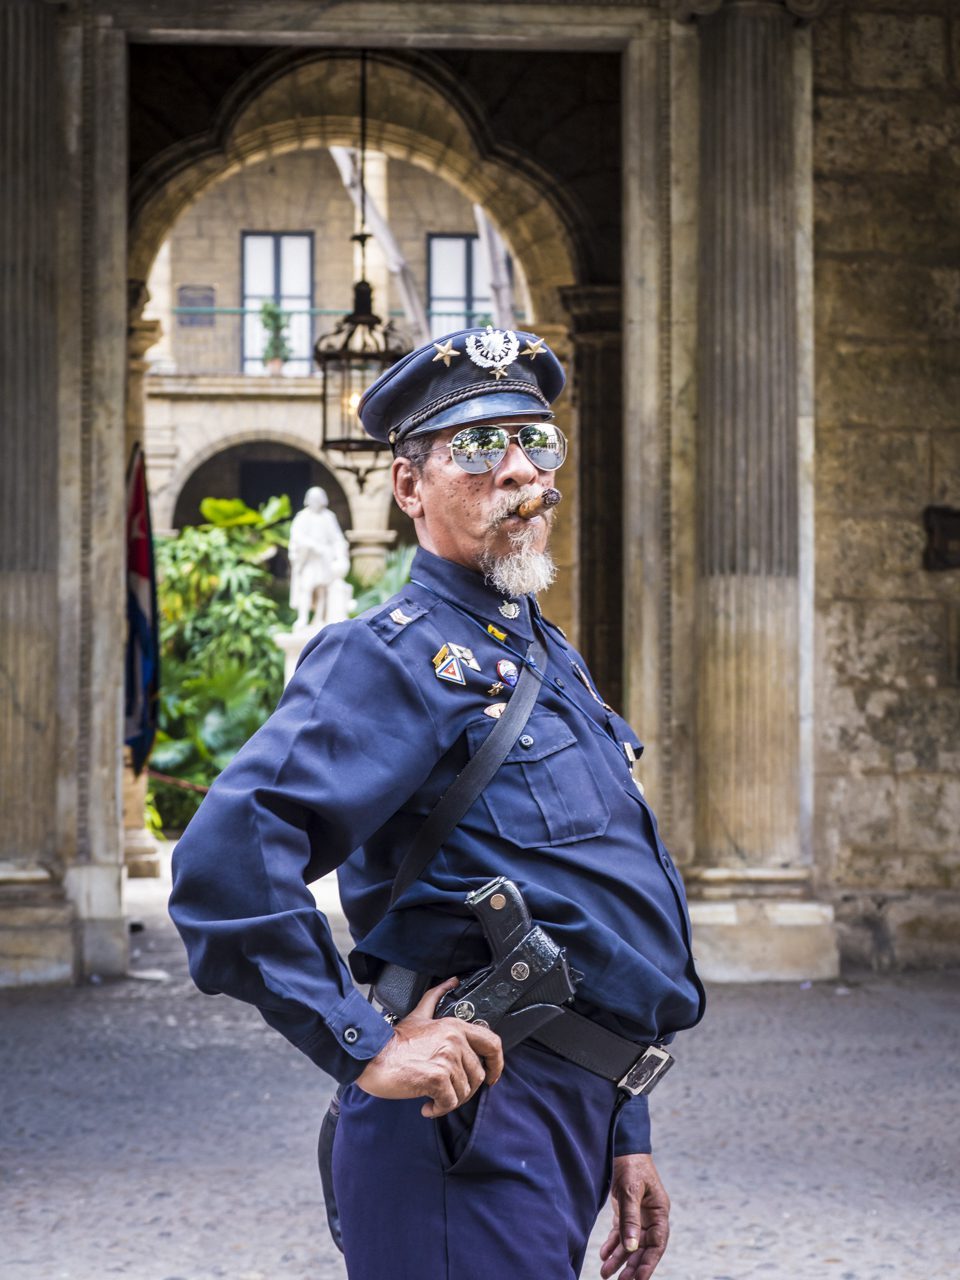 Fake-Polizist in Havanna